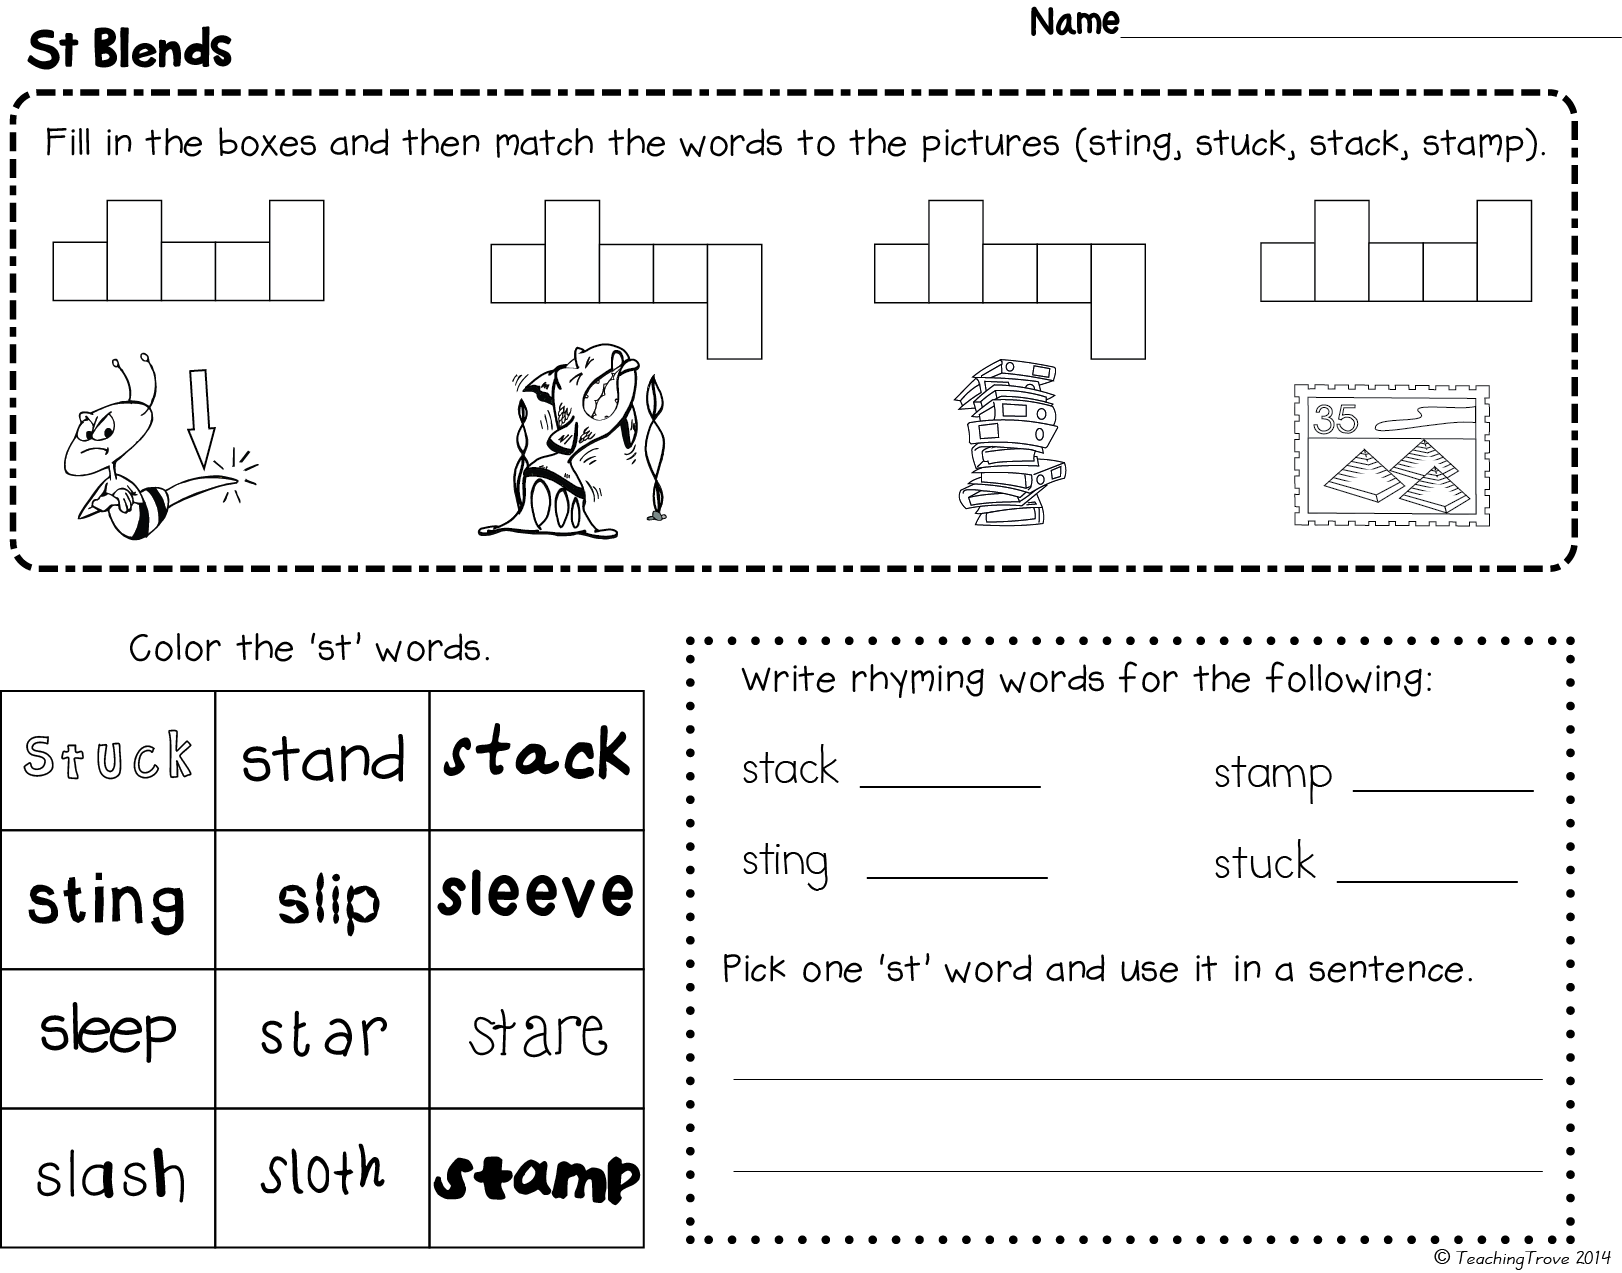 Blends Worksheets For S L And R Blends